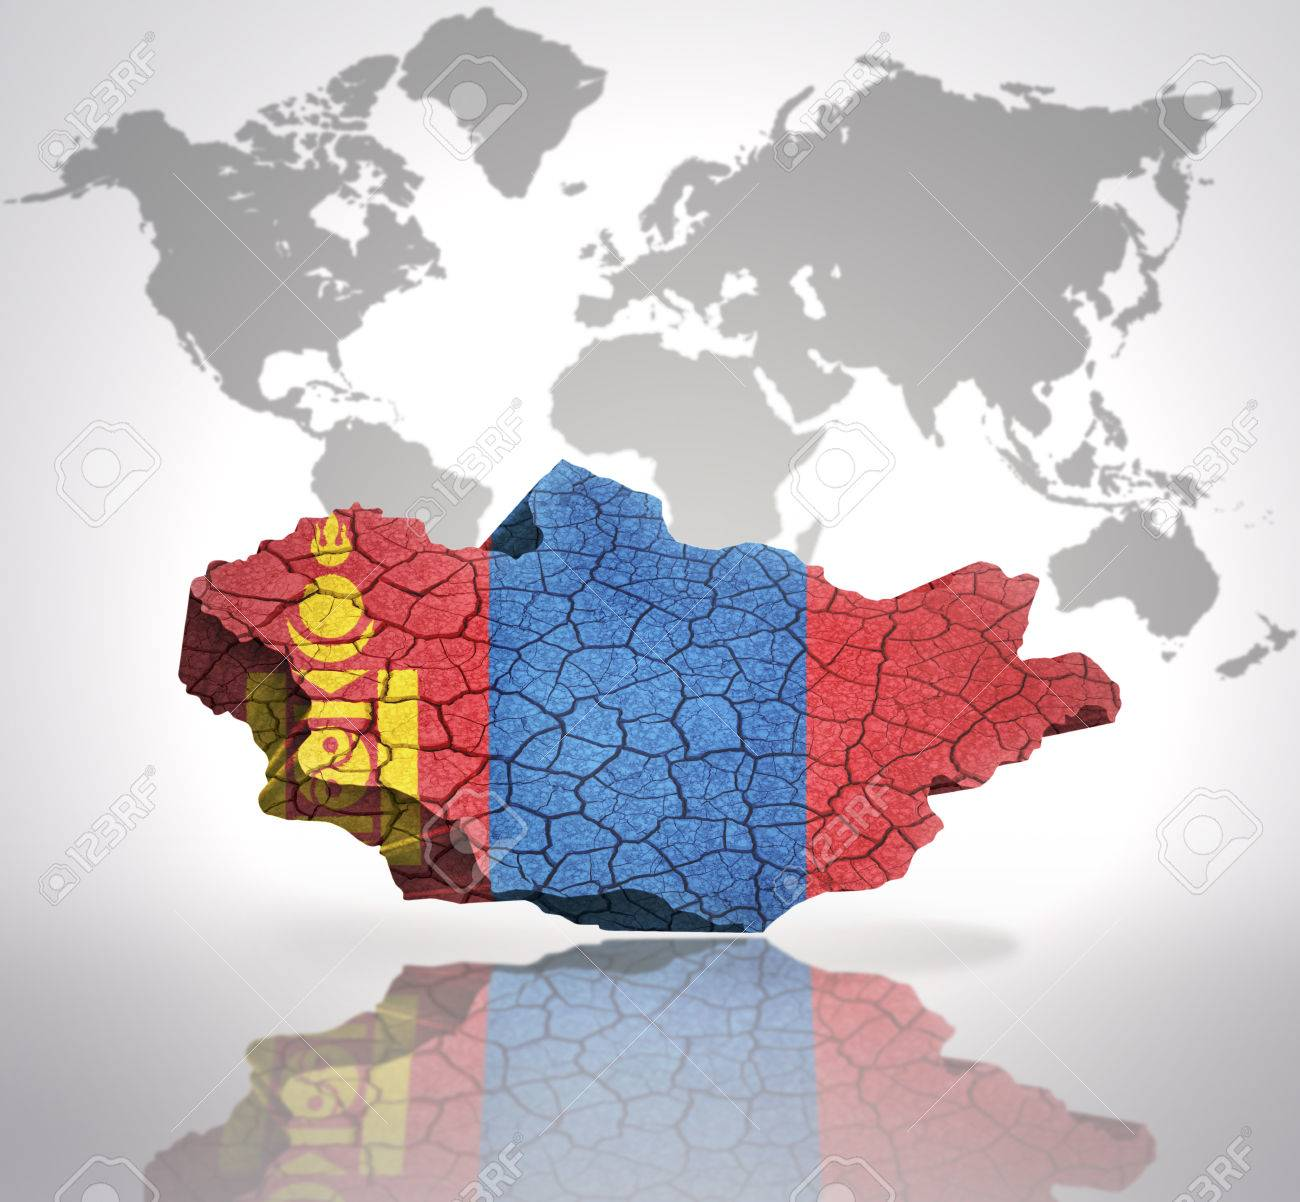 Map of mongolia with mongolian flag on a world map background stock map of mongolia with mongolian flag on a world map background stock photo 32849762 publicscrutiny Gallery